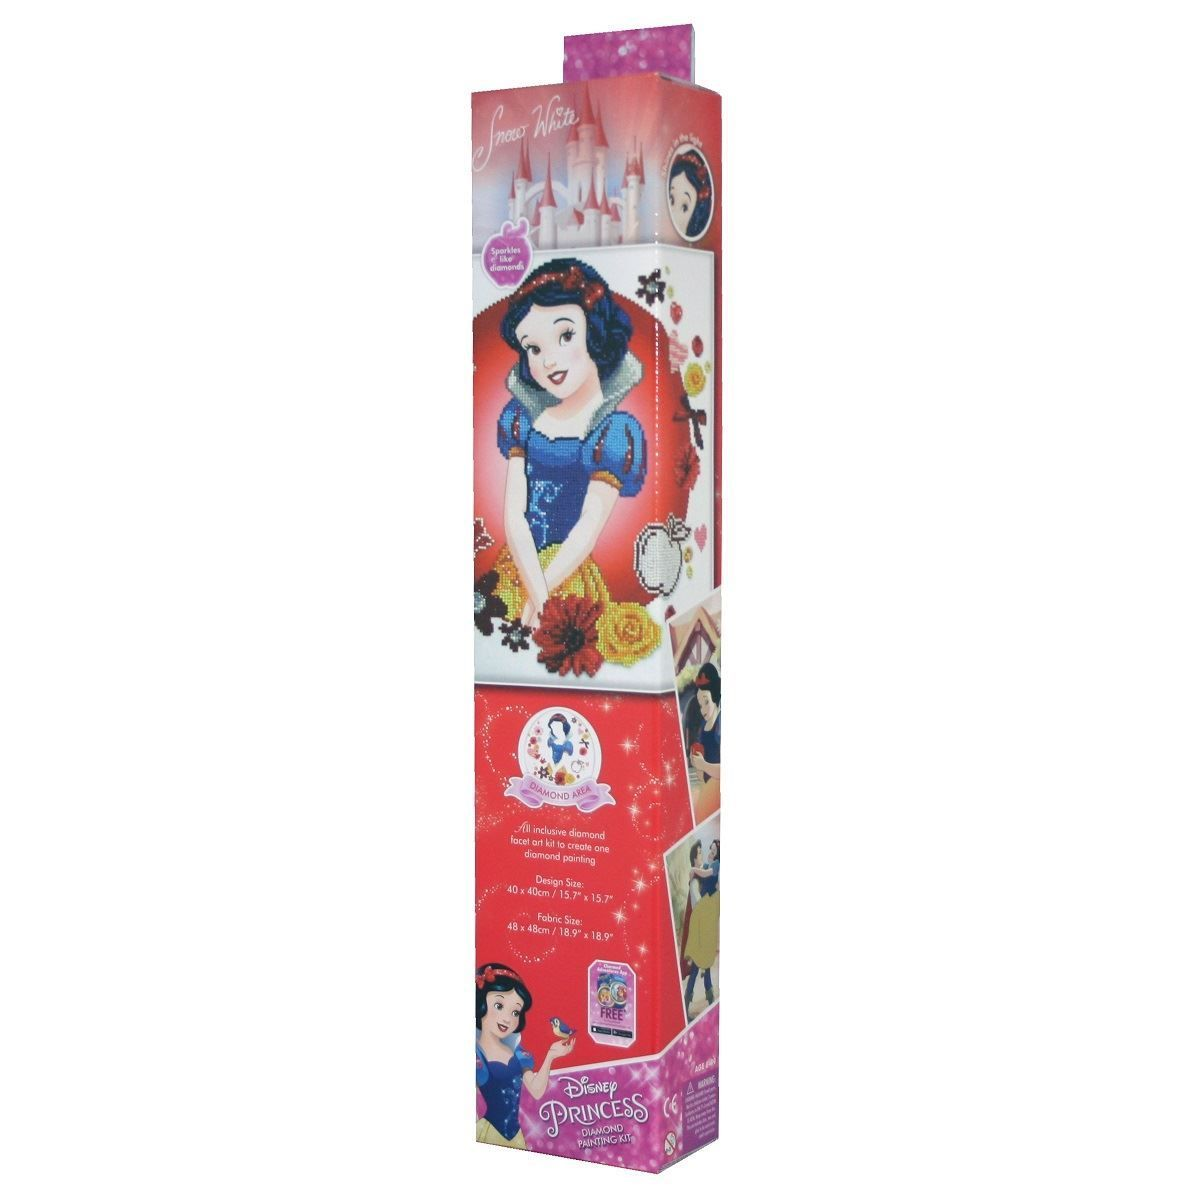 Australia S Largest Children Toys And Book Online Store Now Stocking Disney Snow White Http Davesdeals Com Au Produc With Images My Busy Books Disney Classic Tales